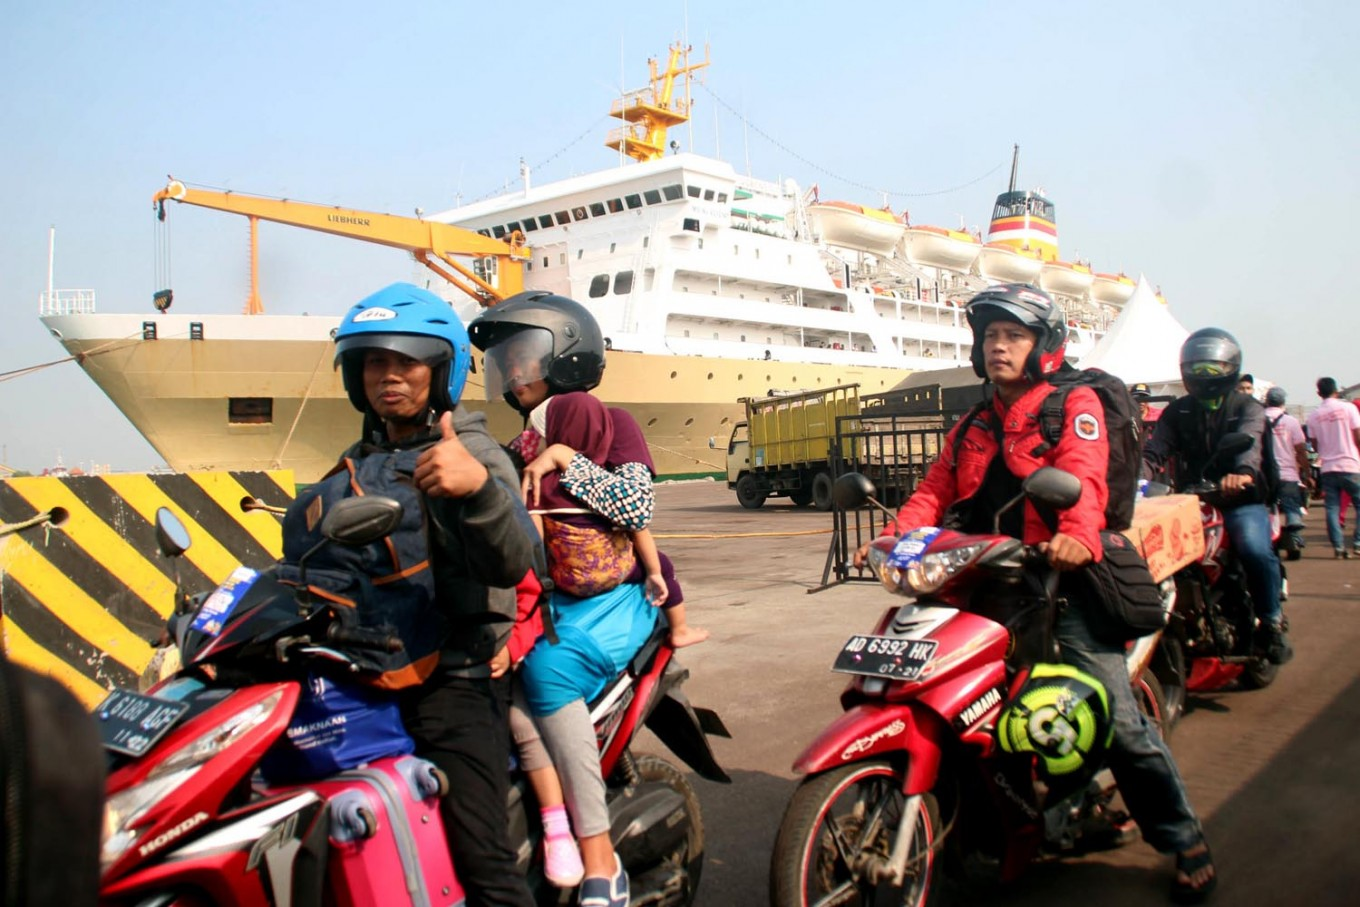 Across the sea: Families ride on motorcycles to their free ferry rides during mudik (exodus). JP/Suherdjoko